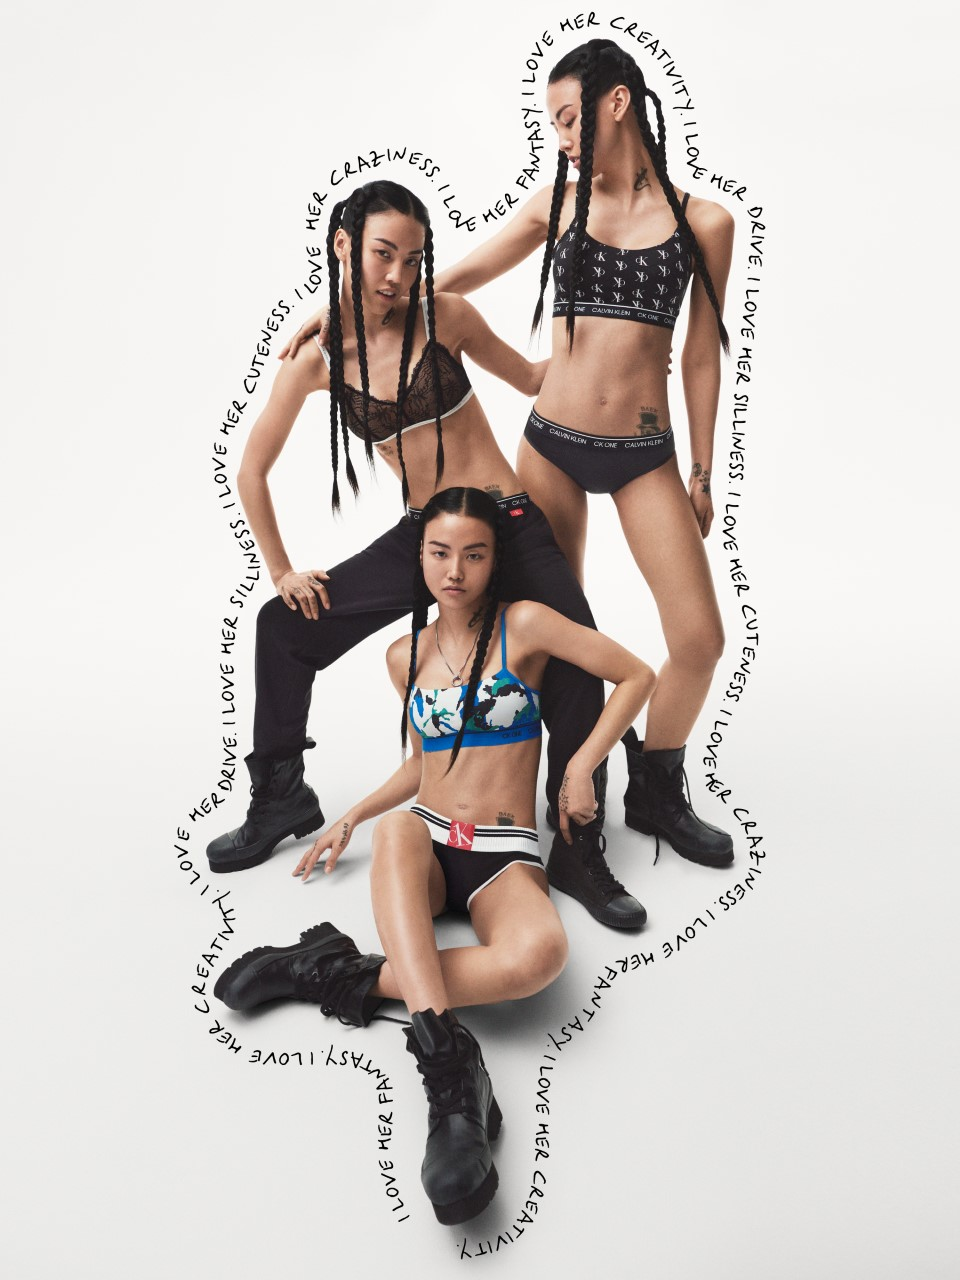 An image of the CK One underwear and jeans collection.